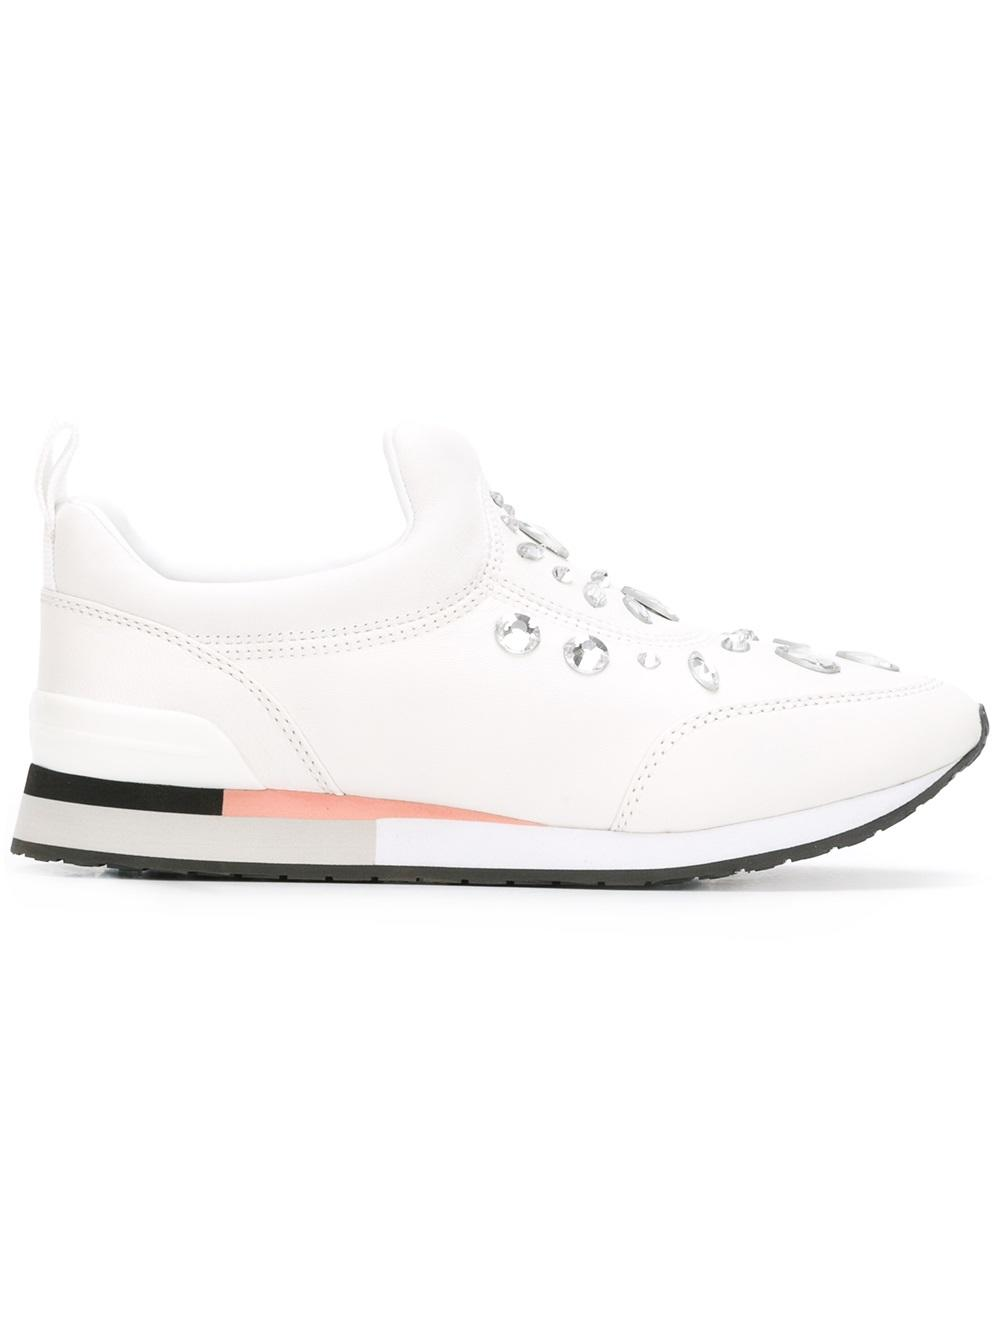 Tory Burch Tory Burch Laney Embellished Sneakers